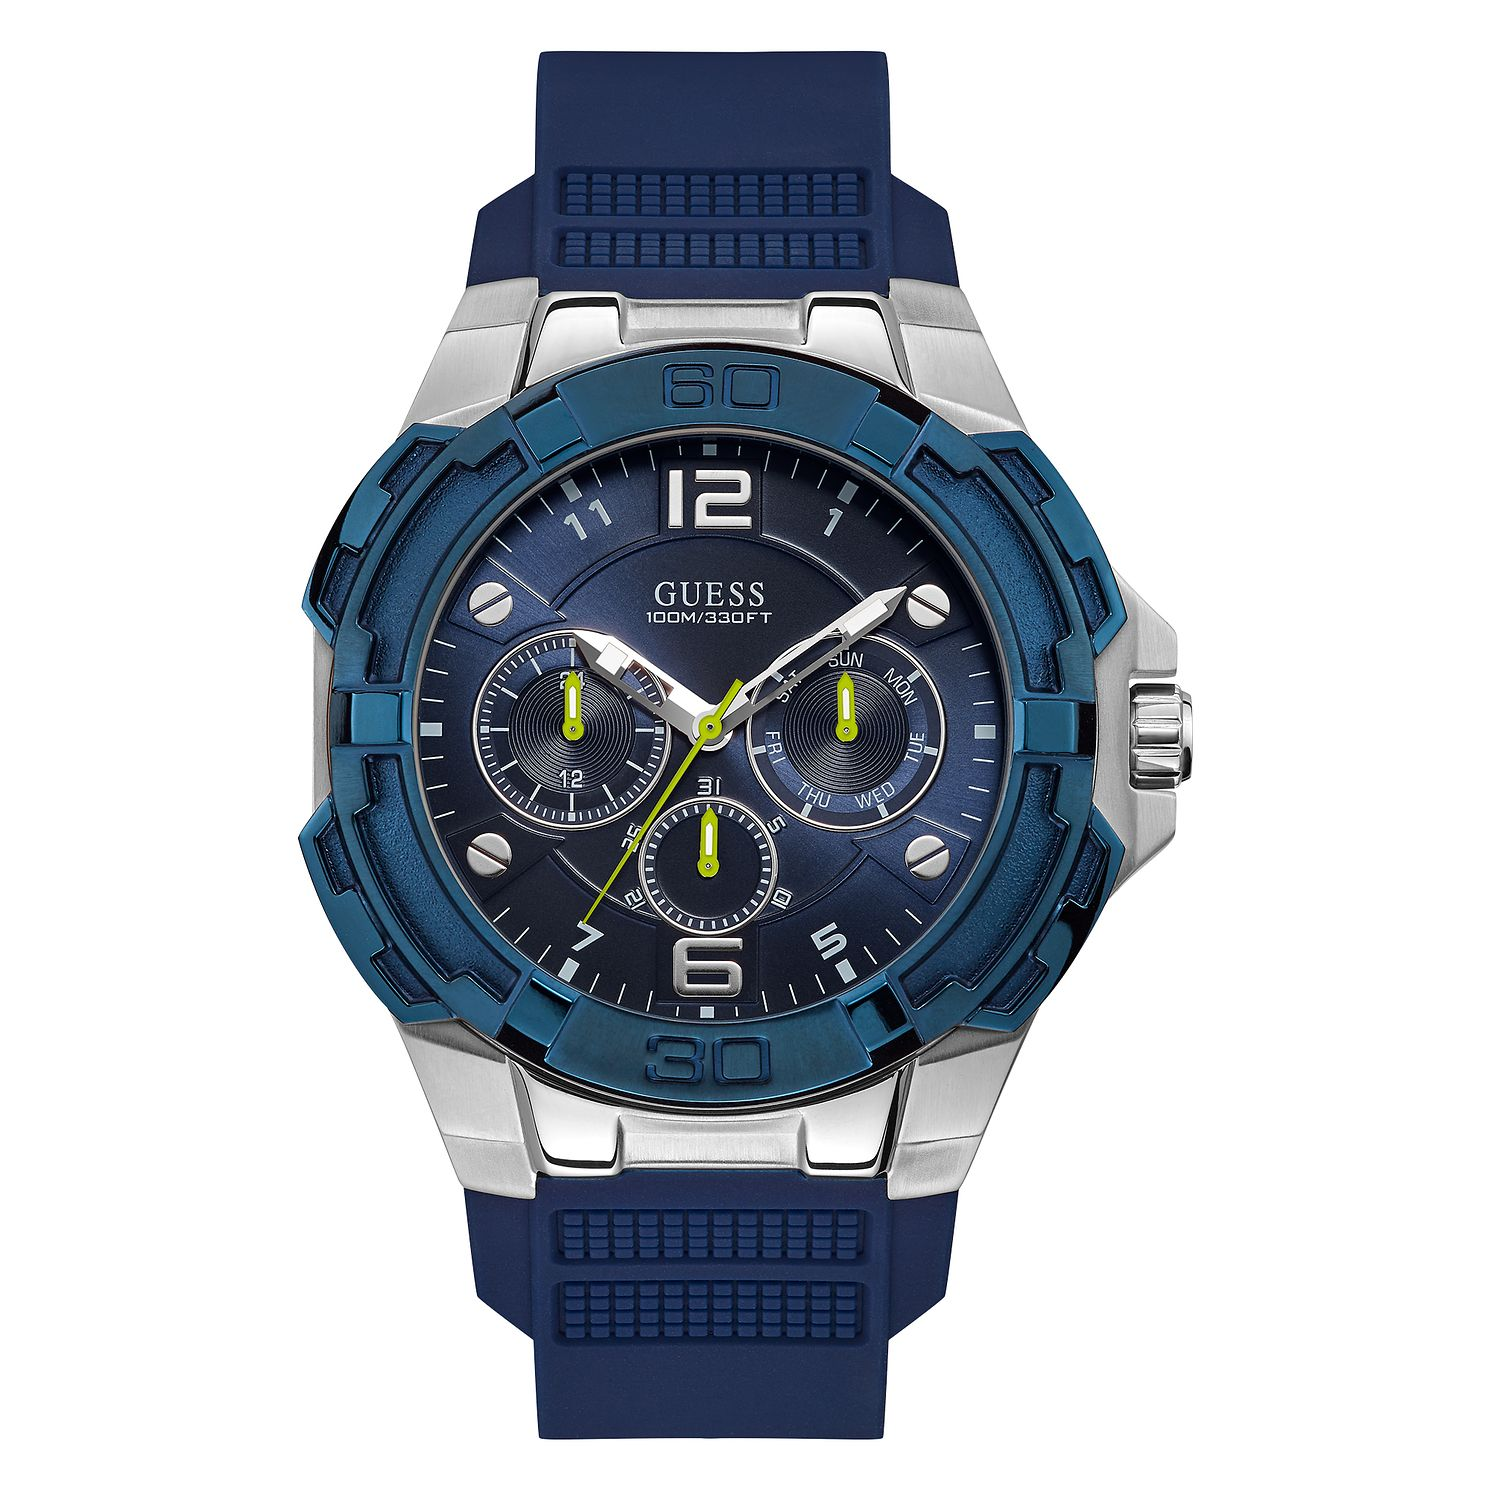 Guess Genesis Men's Blue Silicone Strap Watch - Product number 5191300